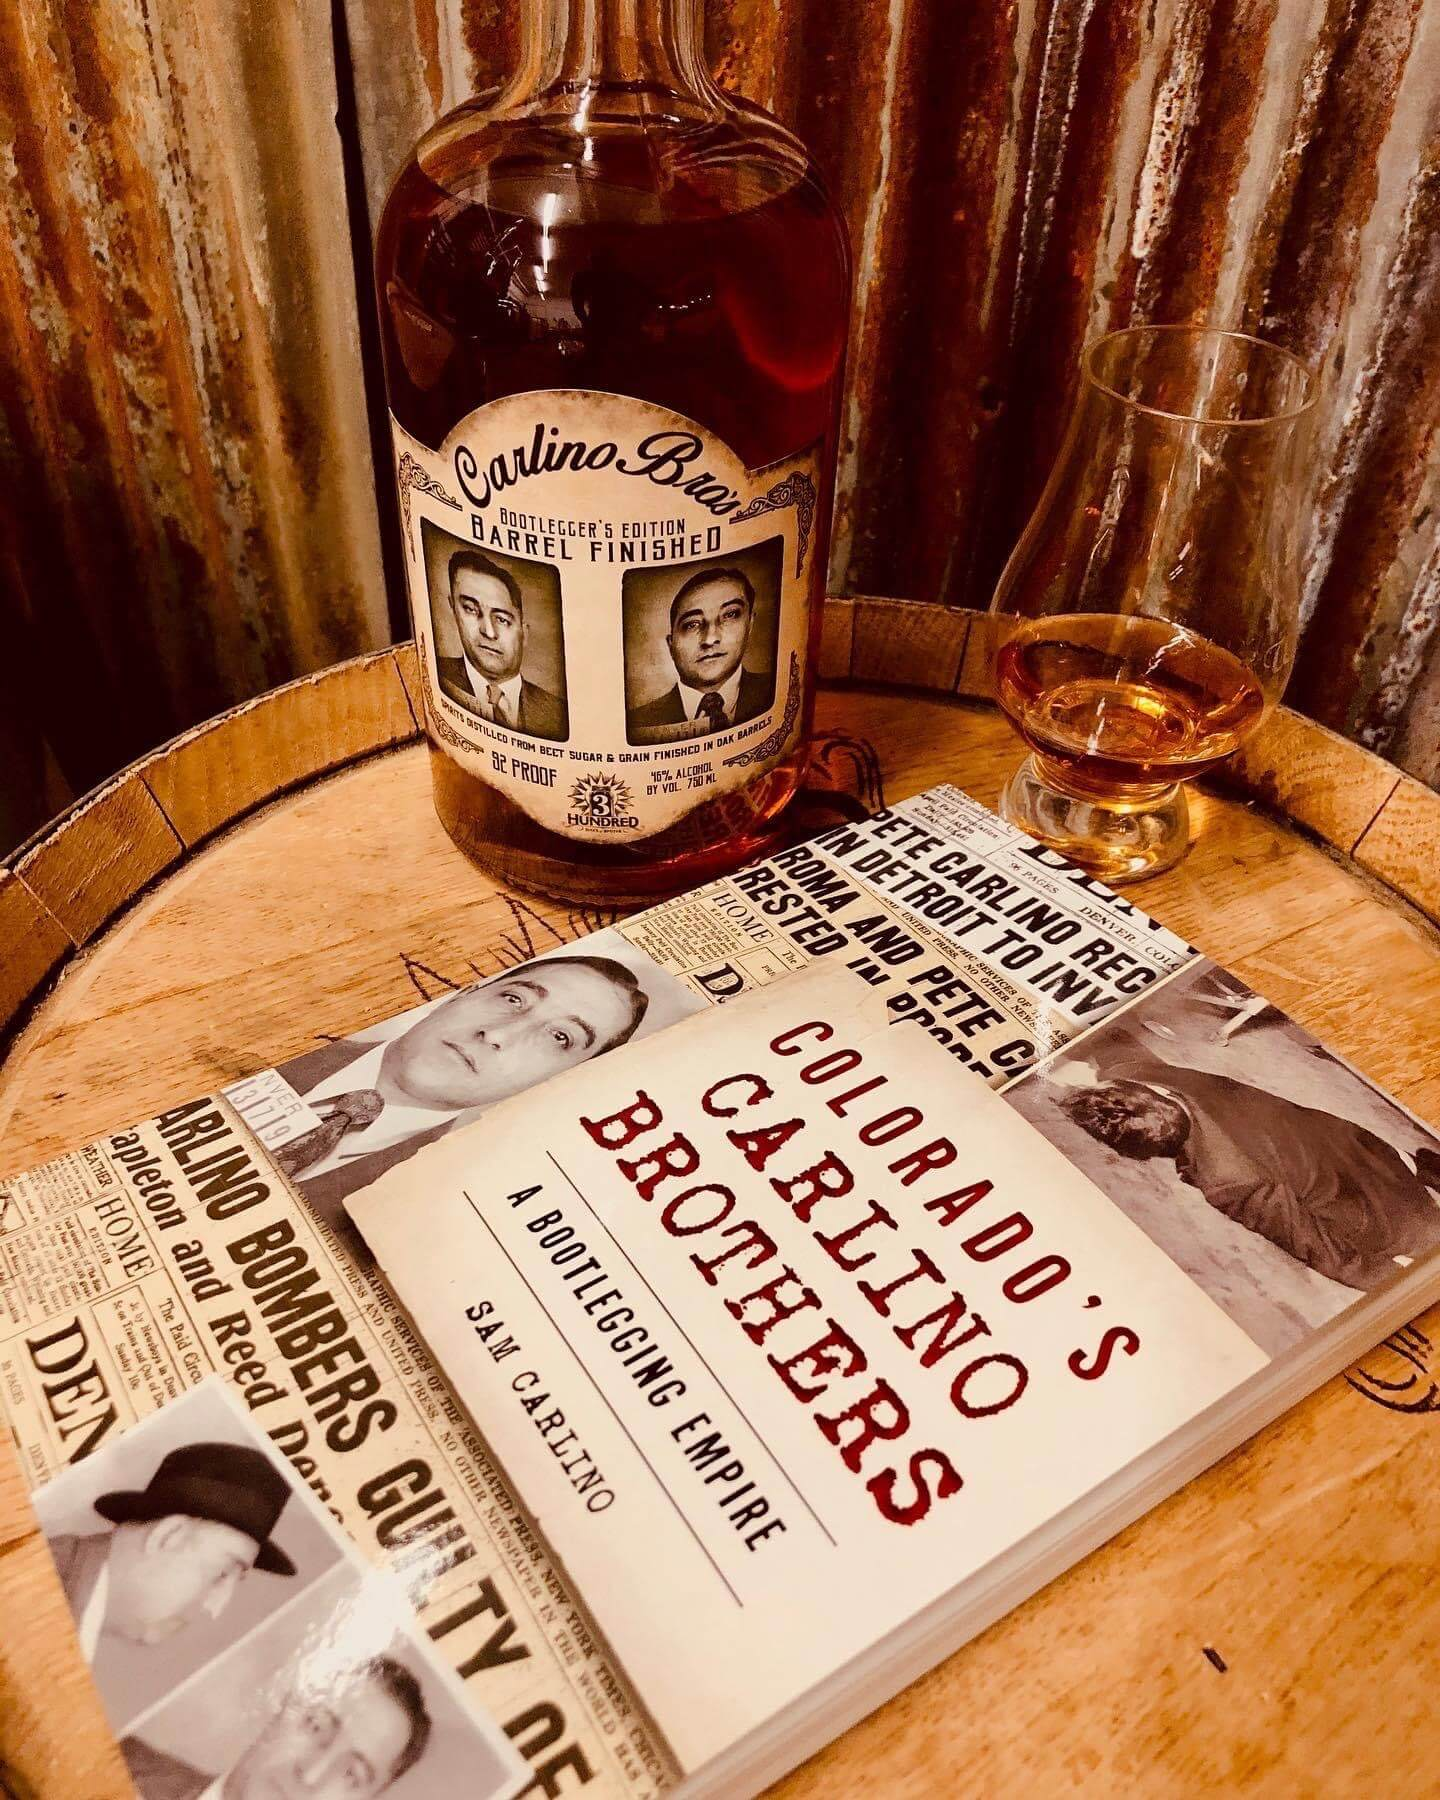 Book and Whiskey photo